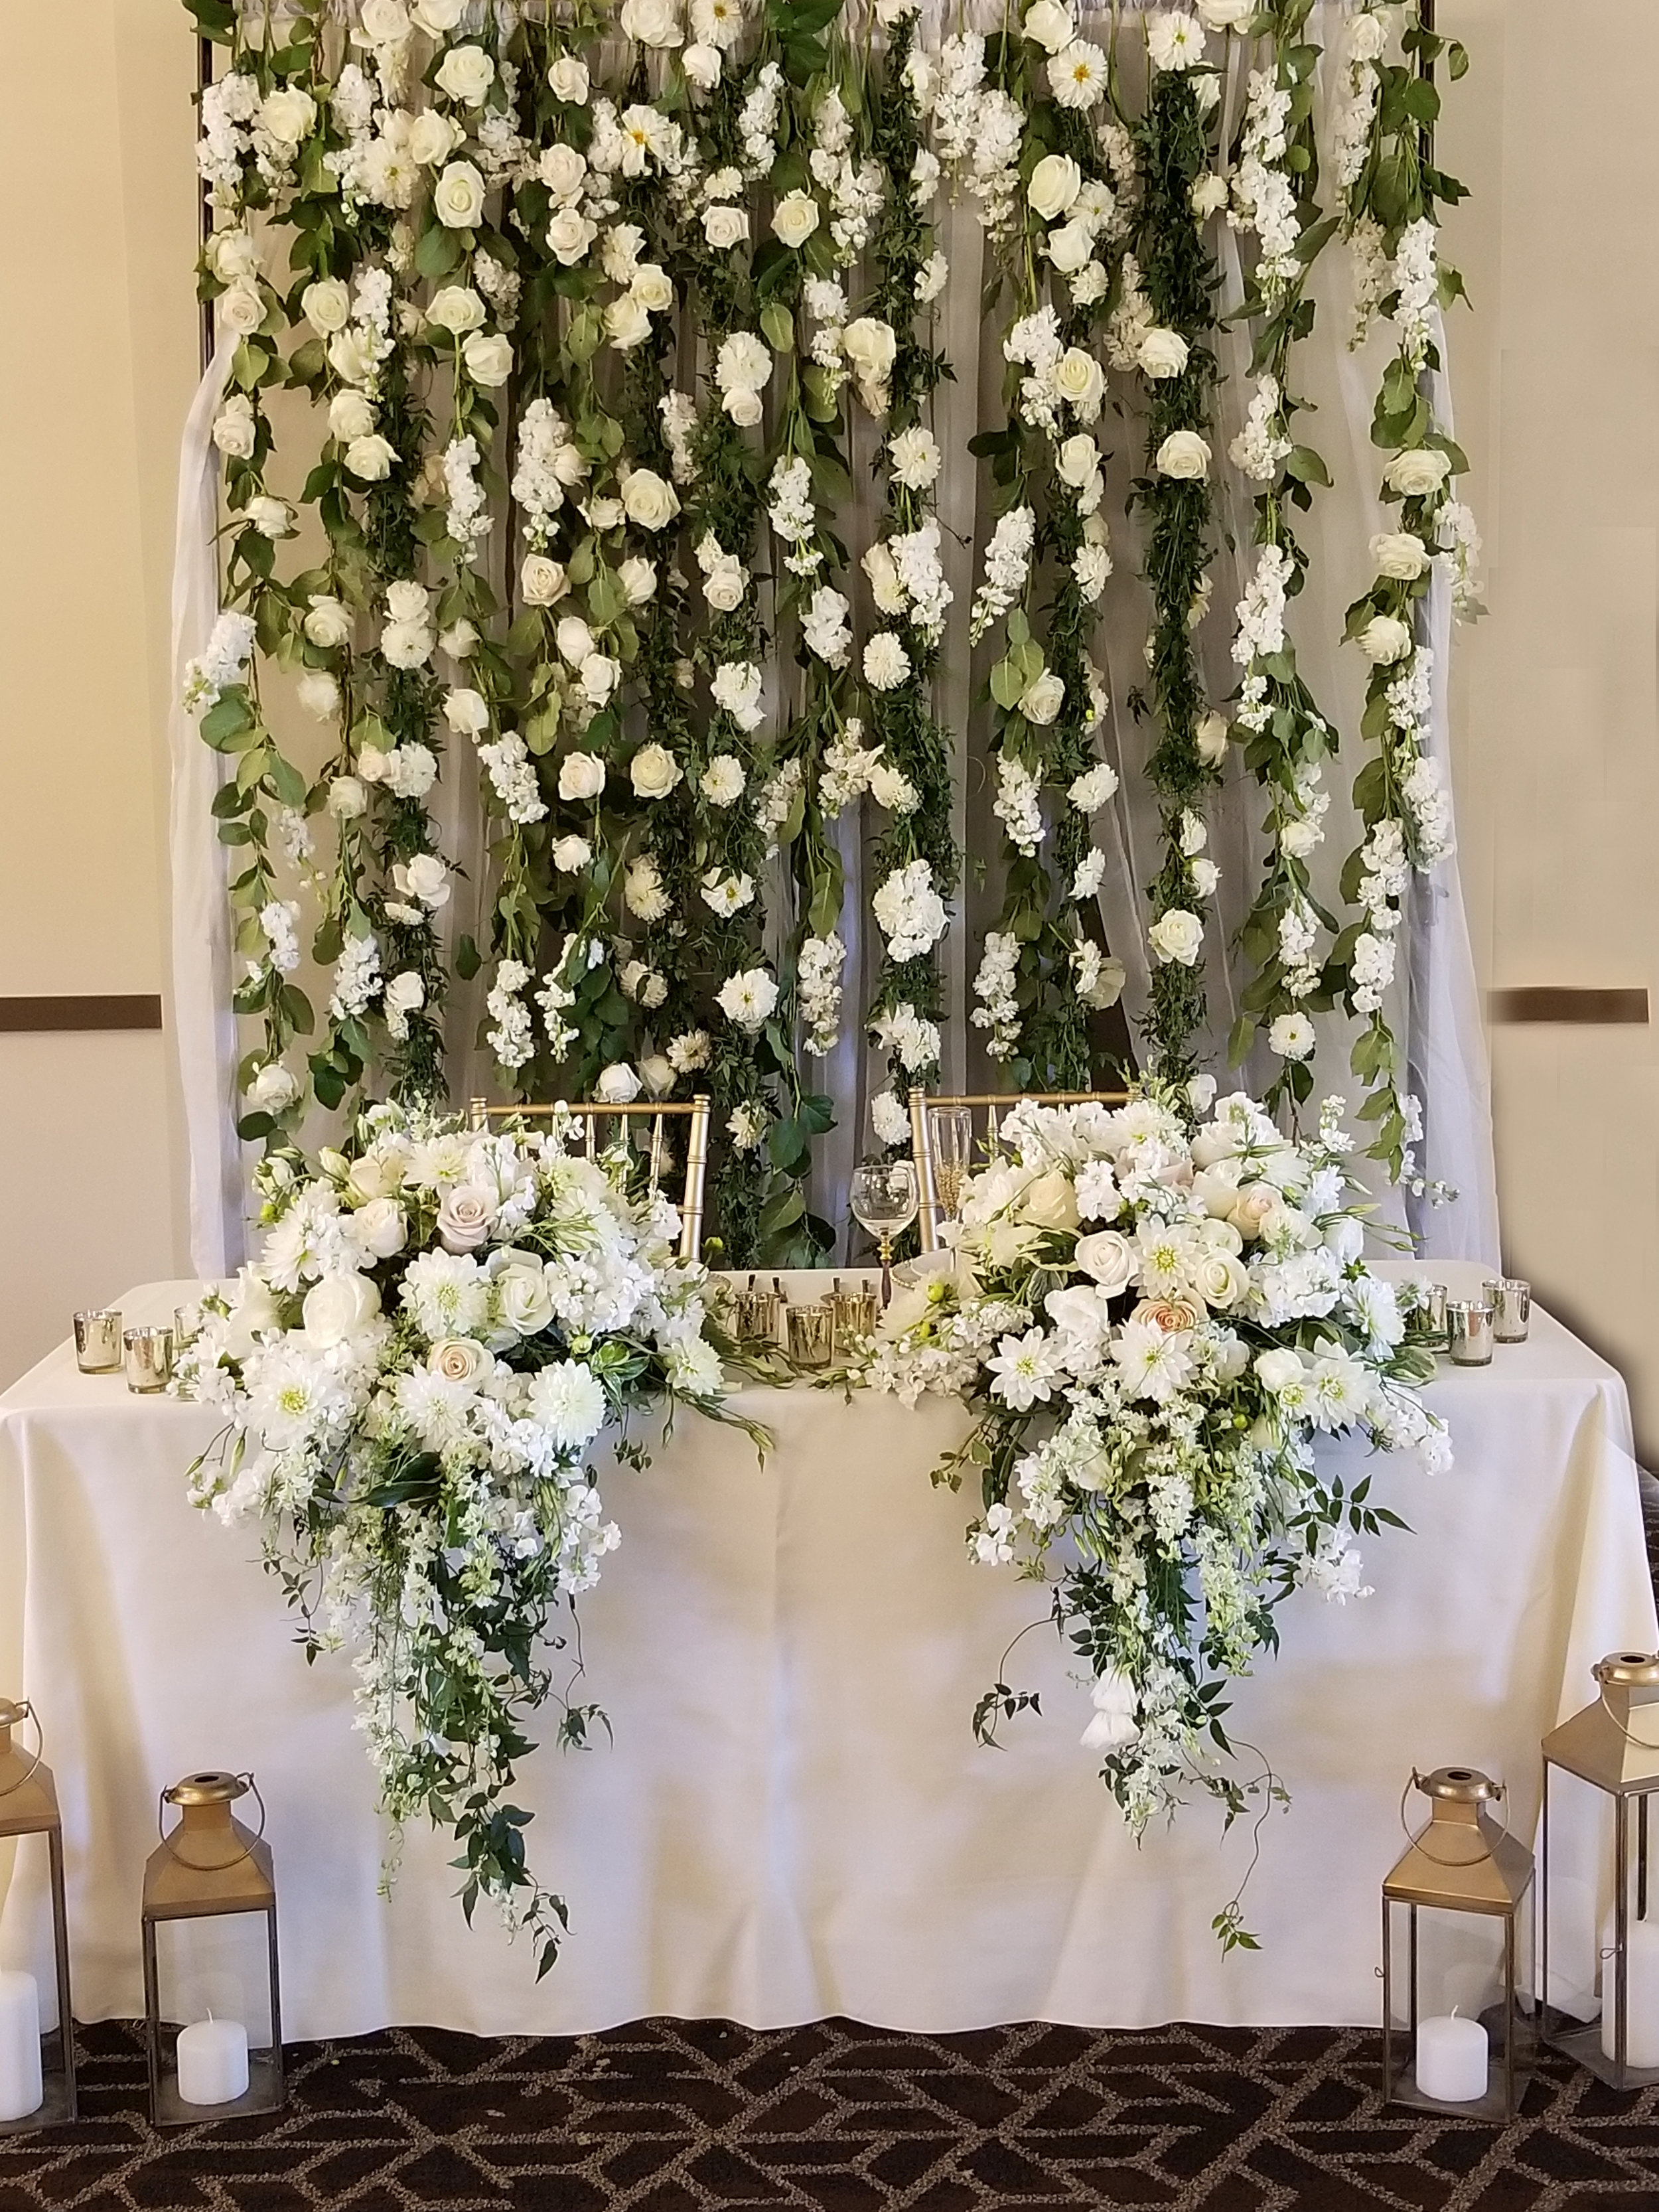 Sweetheart table floral wall, hanging passion vines and lush white flowers. Sweetheart table cascade florals draping off the table.